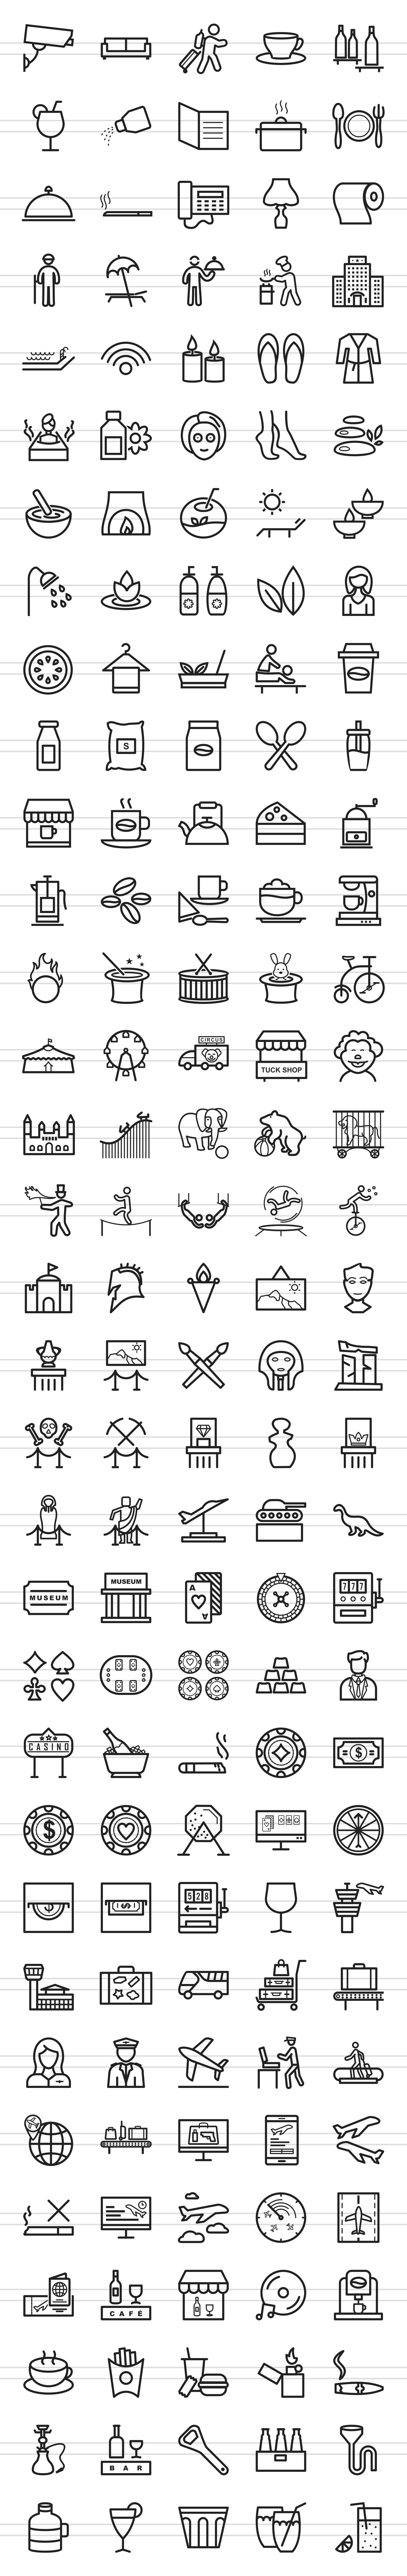 166 Places Line Icons example image 2